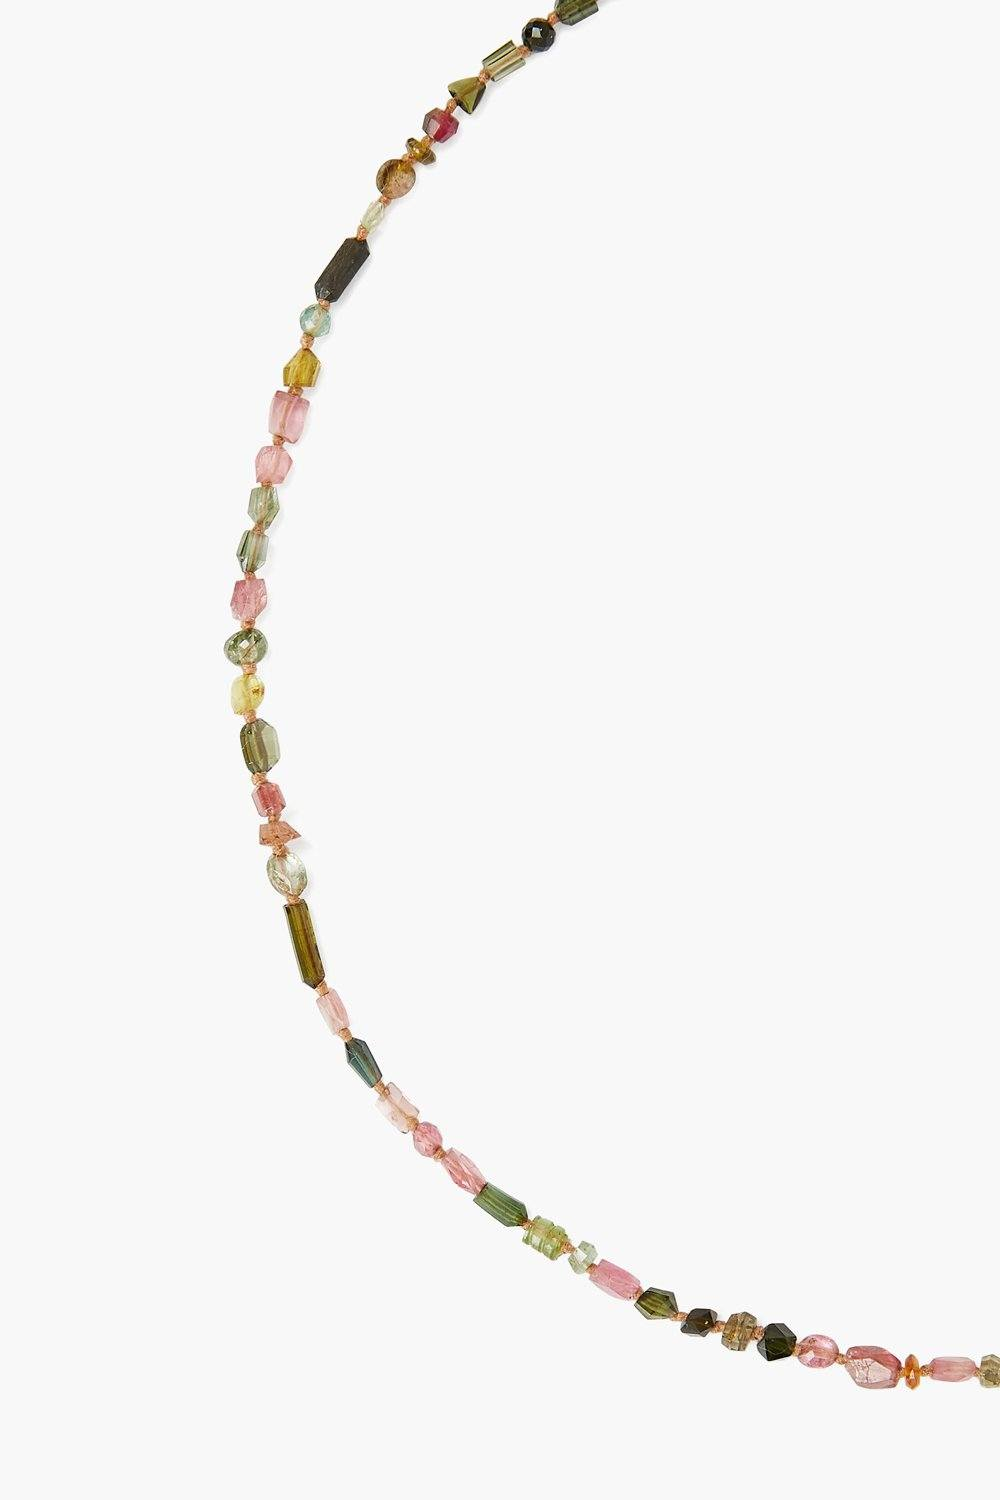 14k Watermelon Tourmaline Necklace